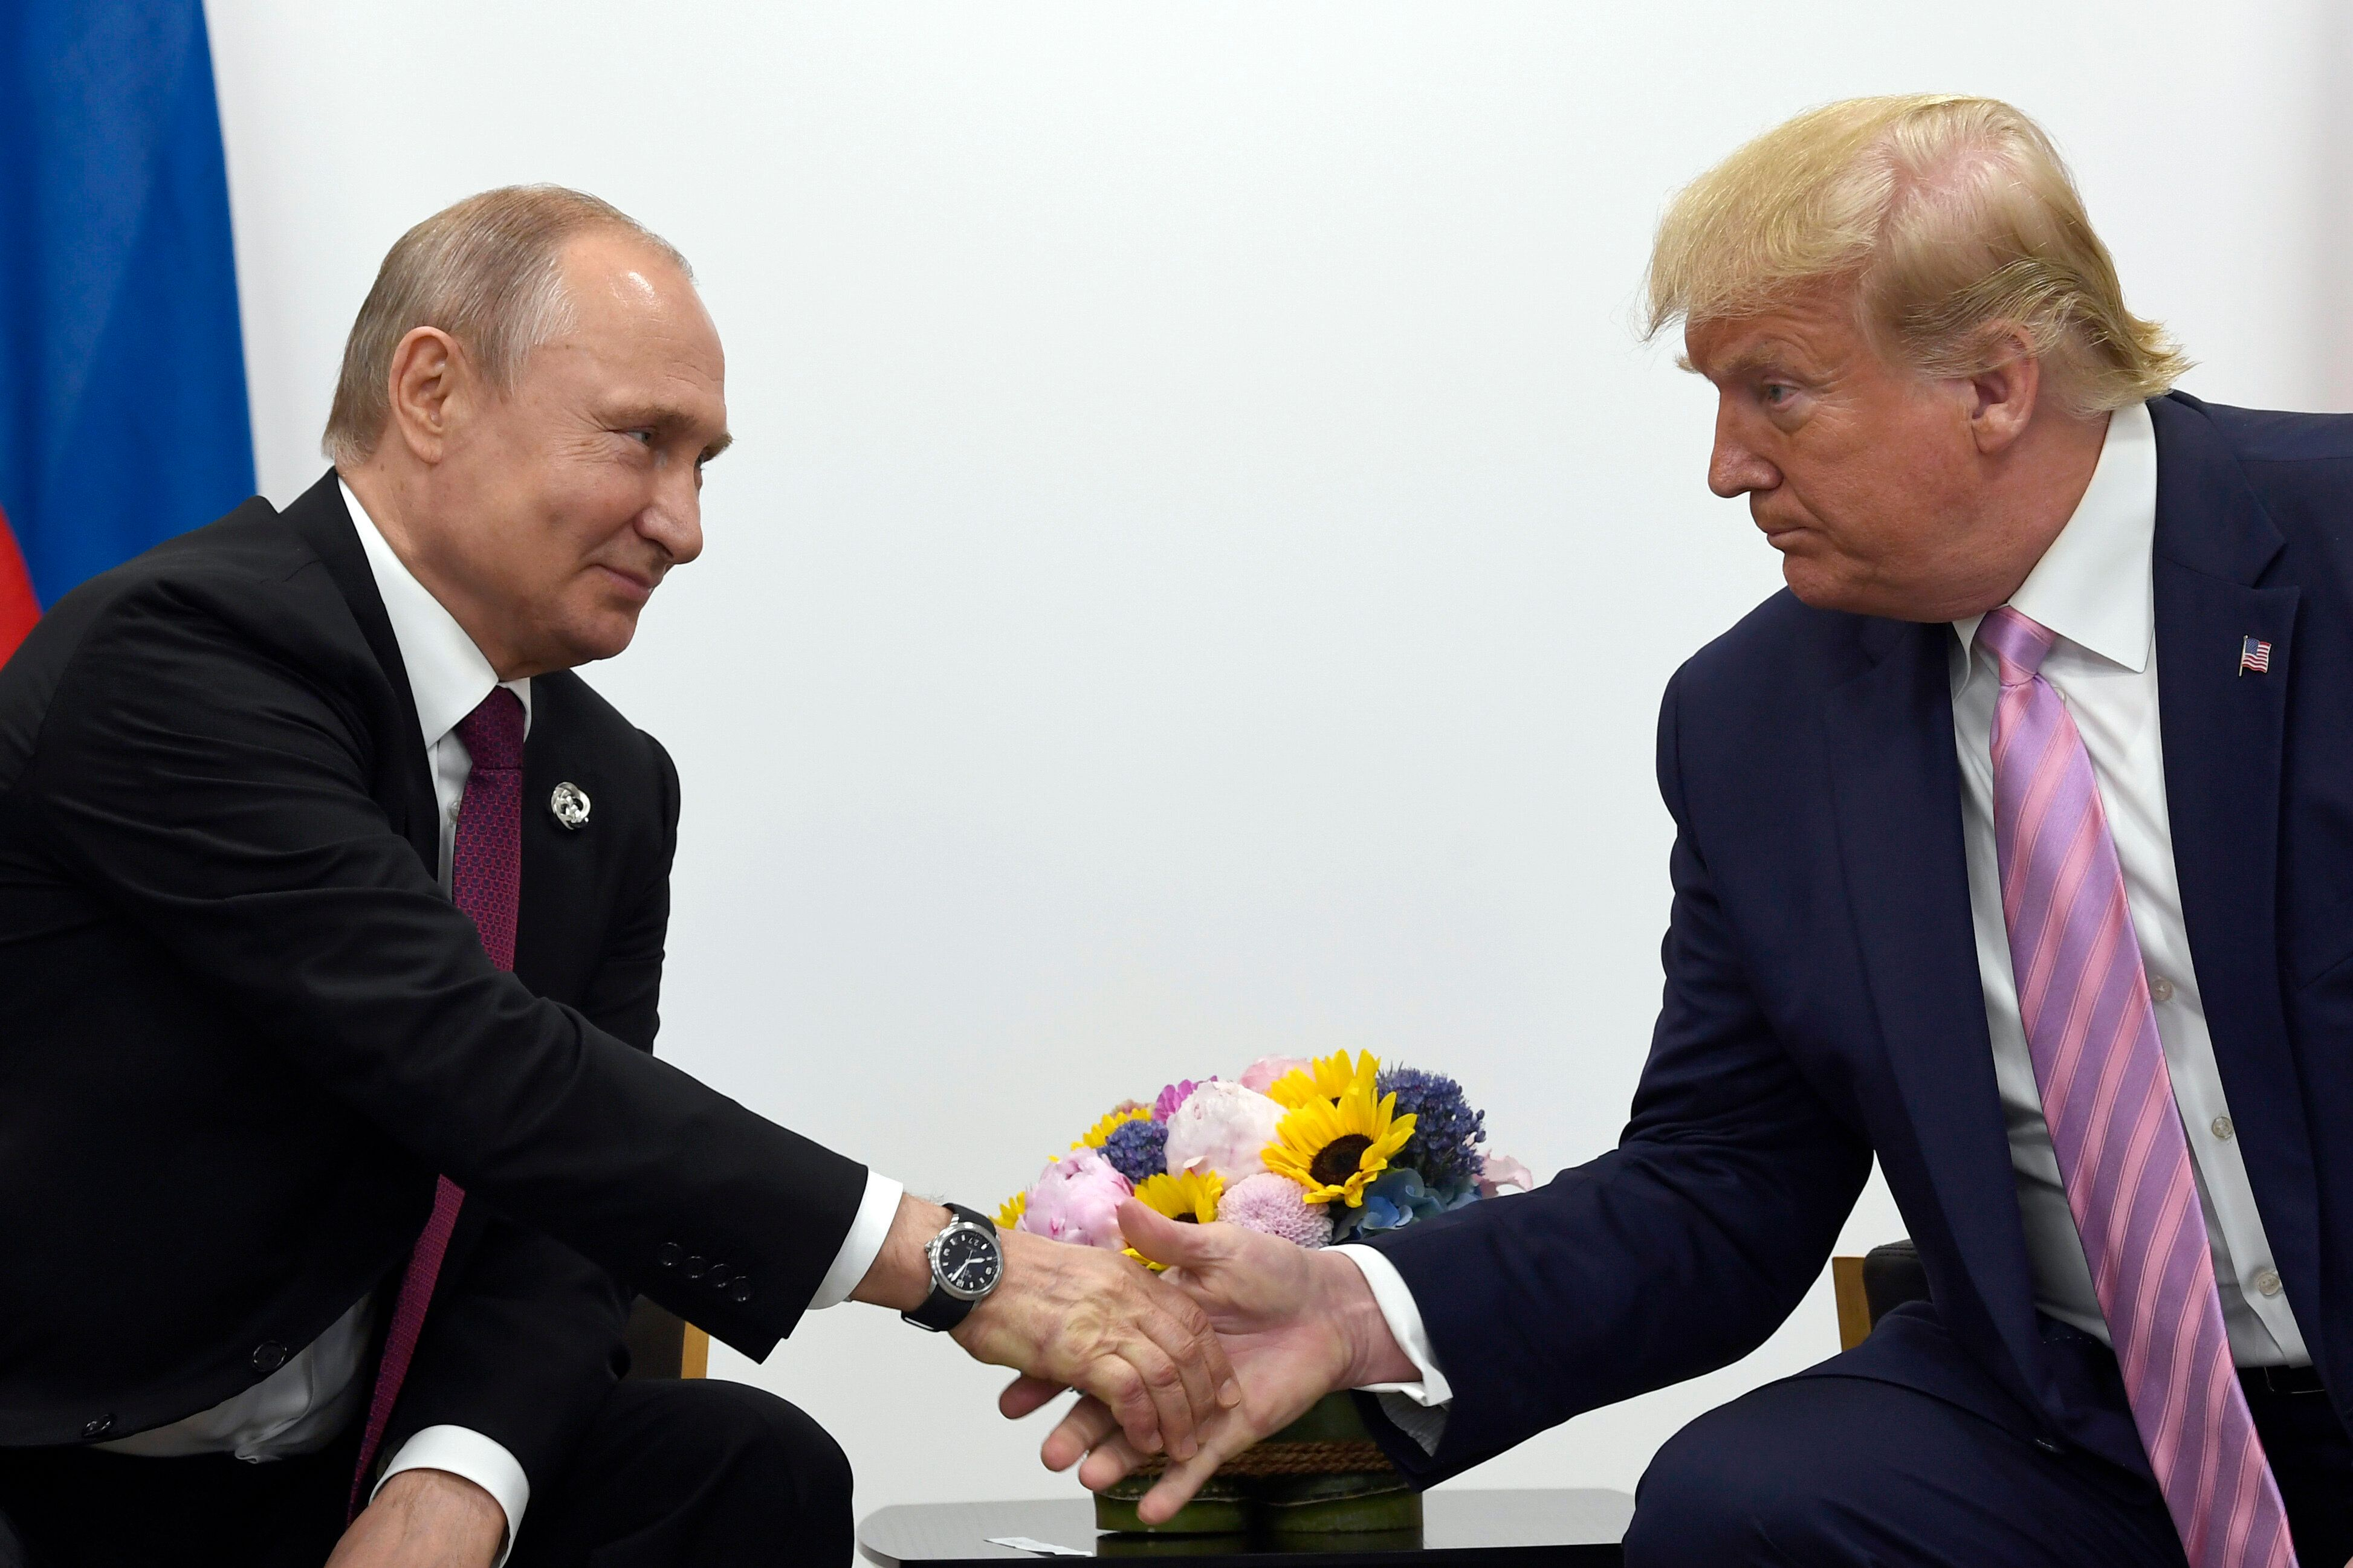 President Donald Trump, right, shakes hands with Russian President Vladimir Putin, left, during a bilateral meeting on the si